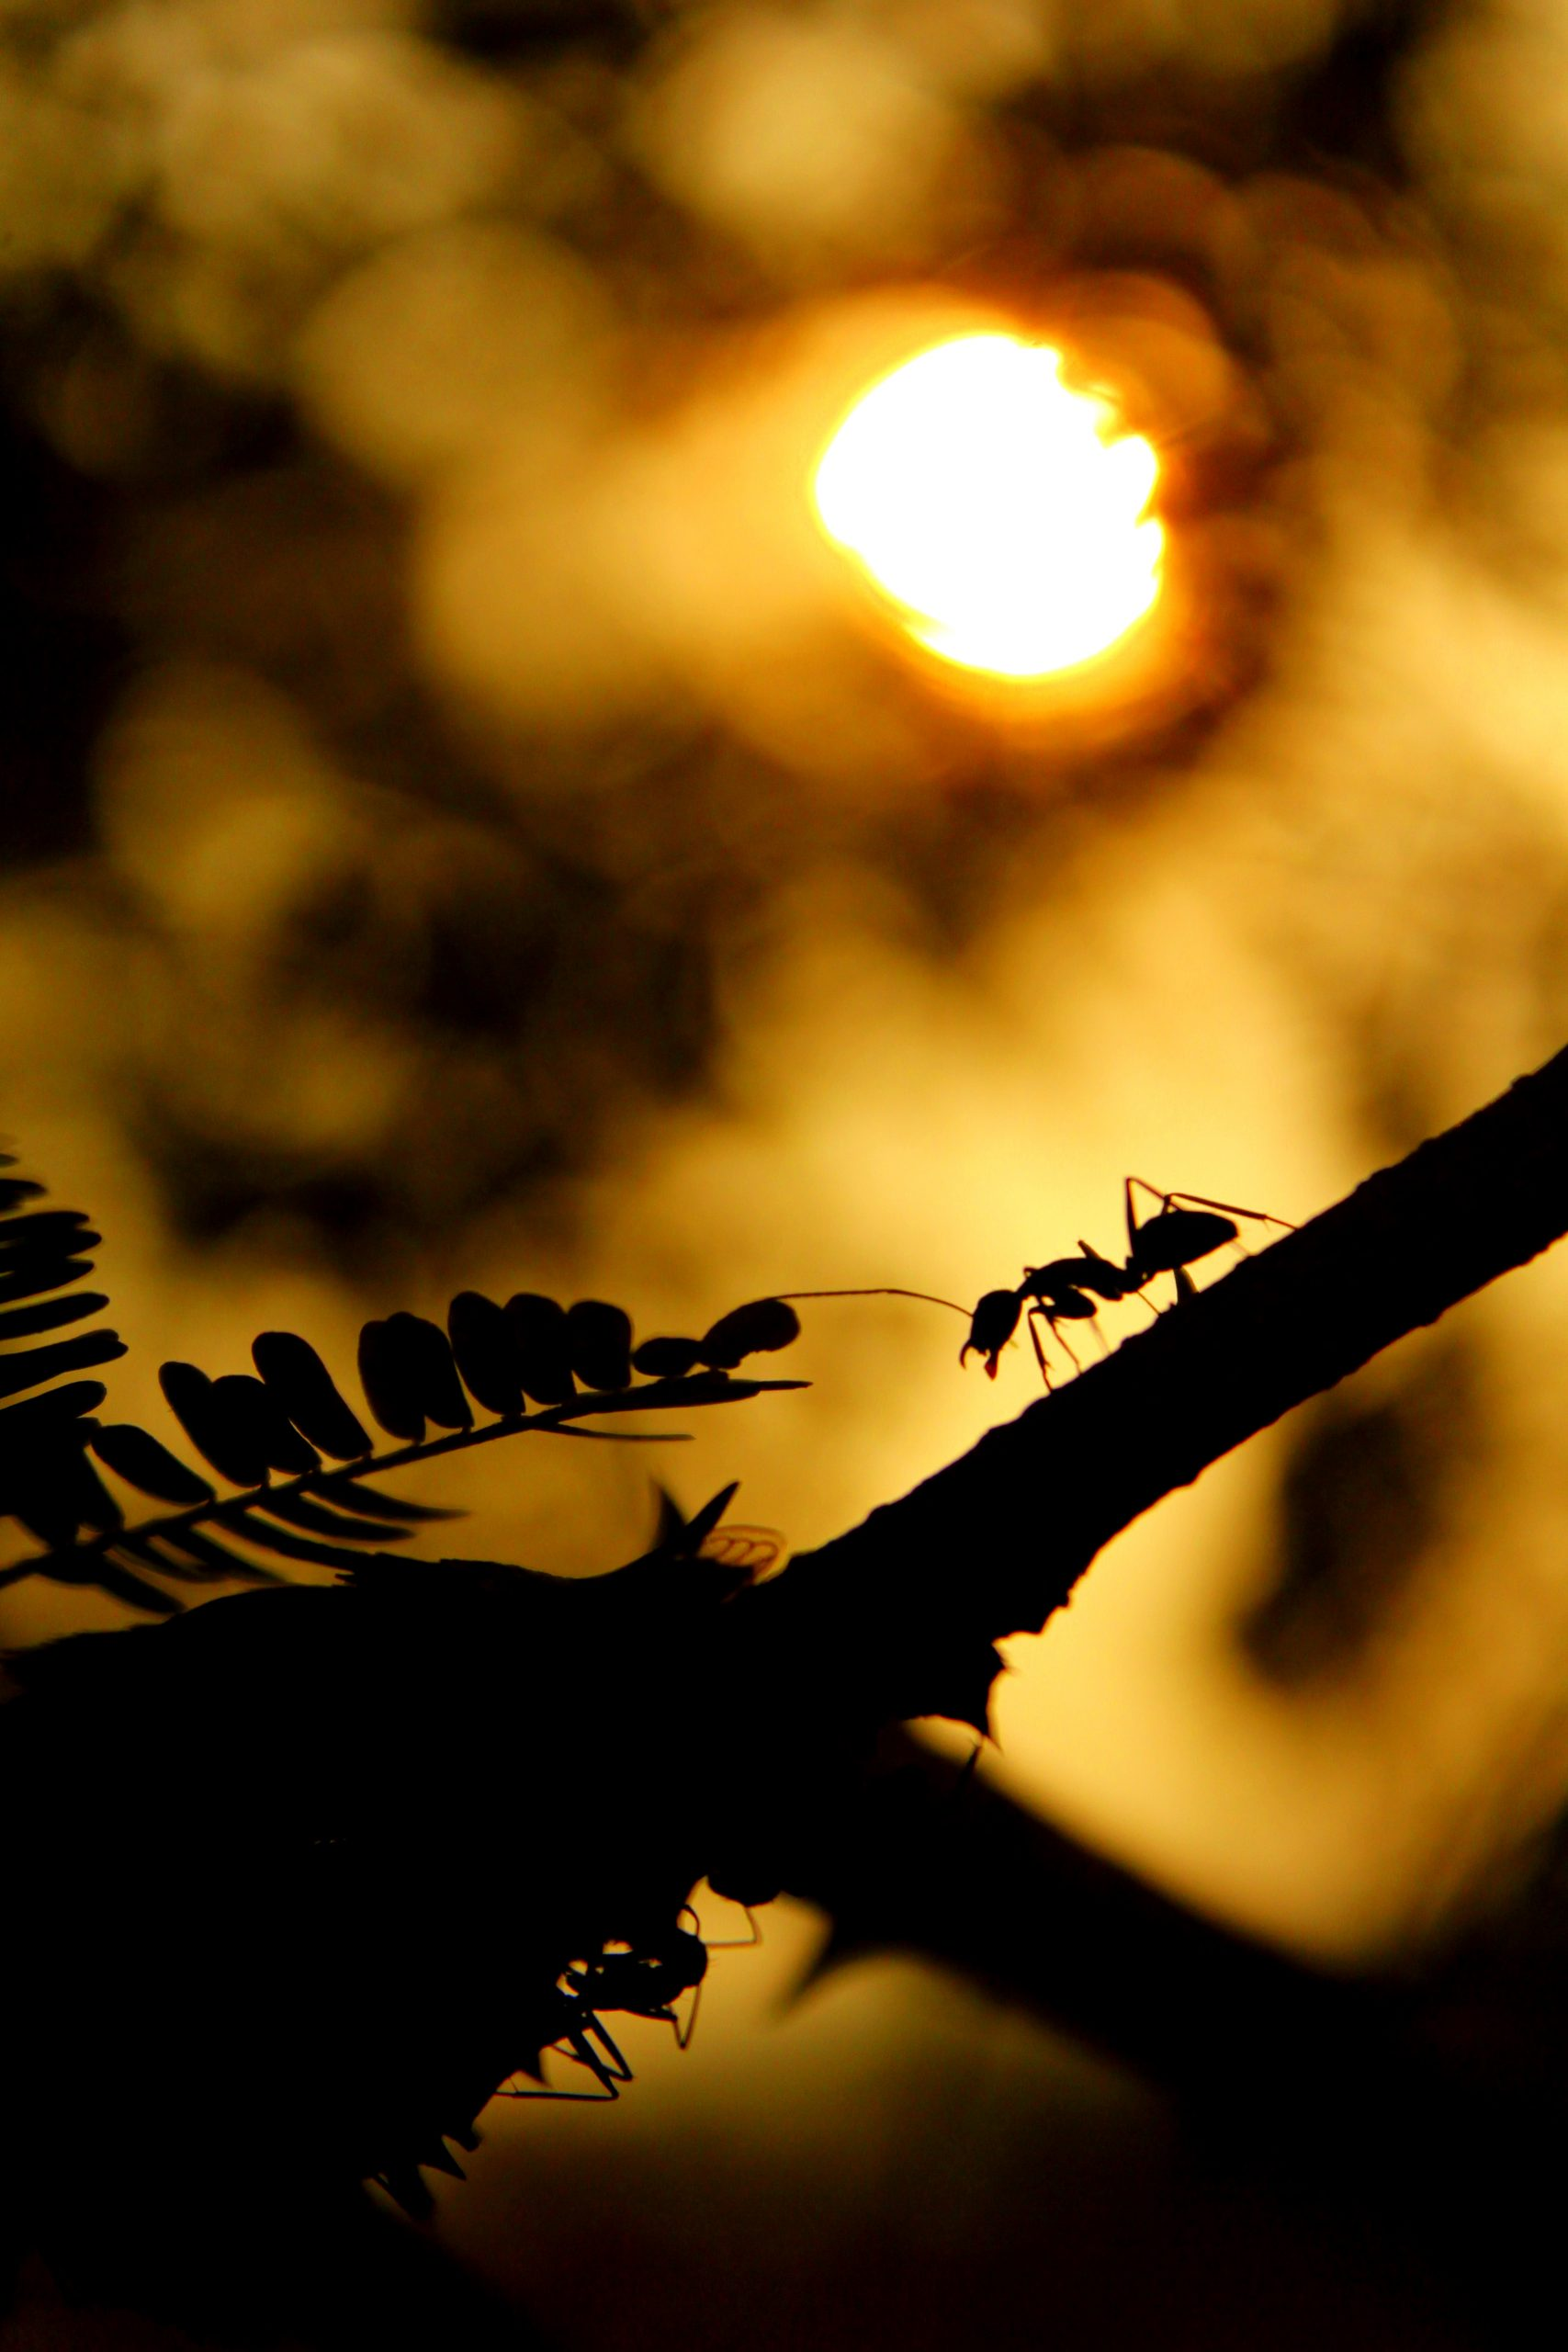 ant walking on the branch